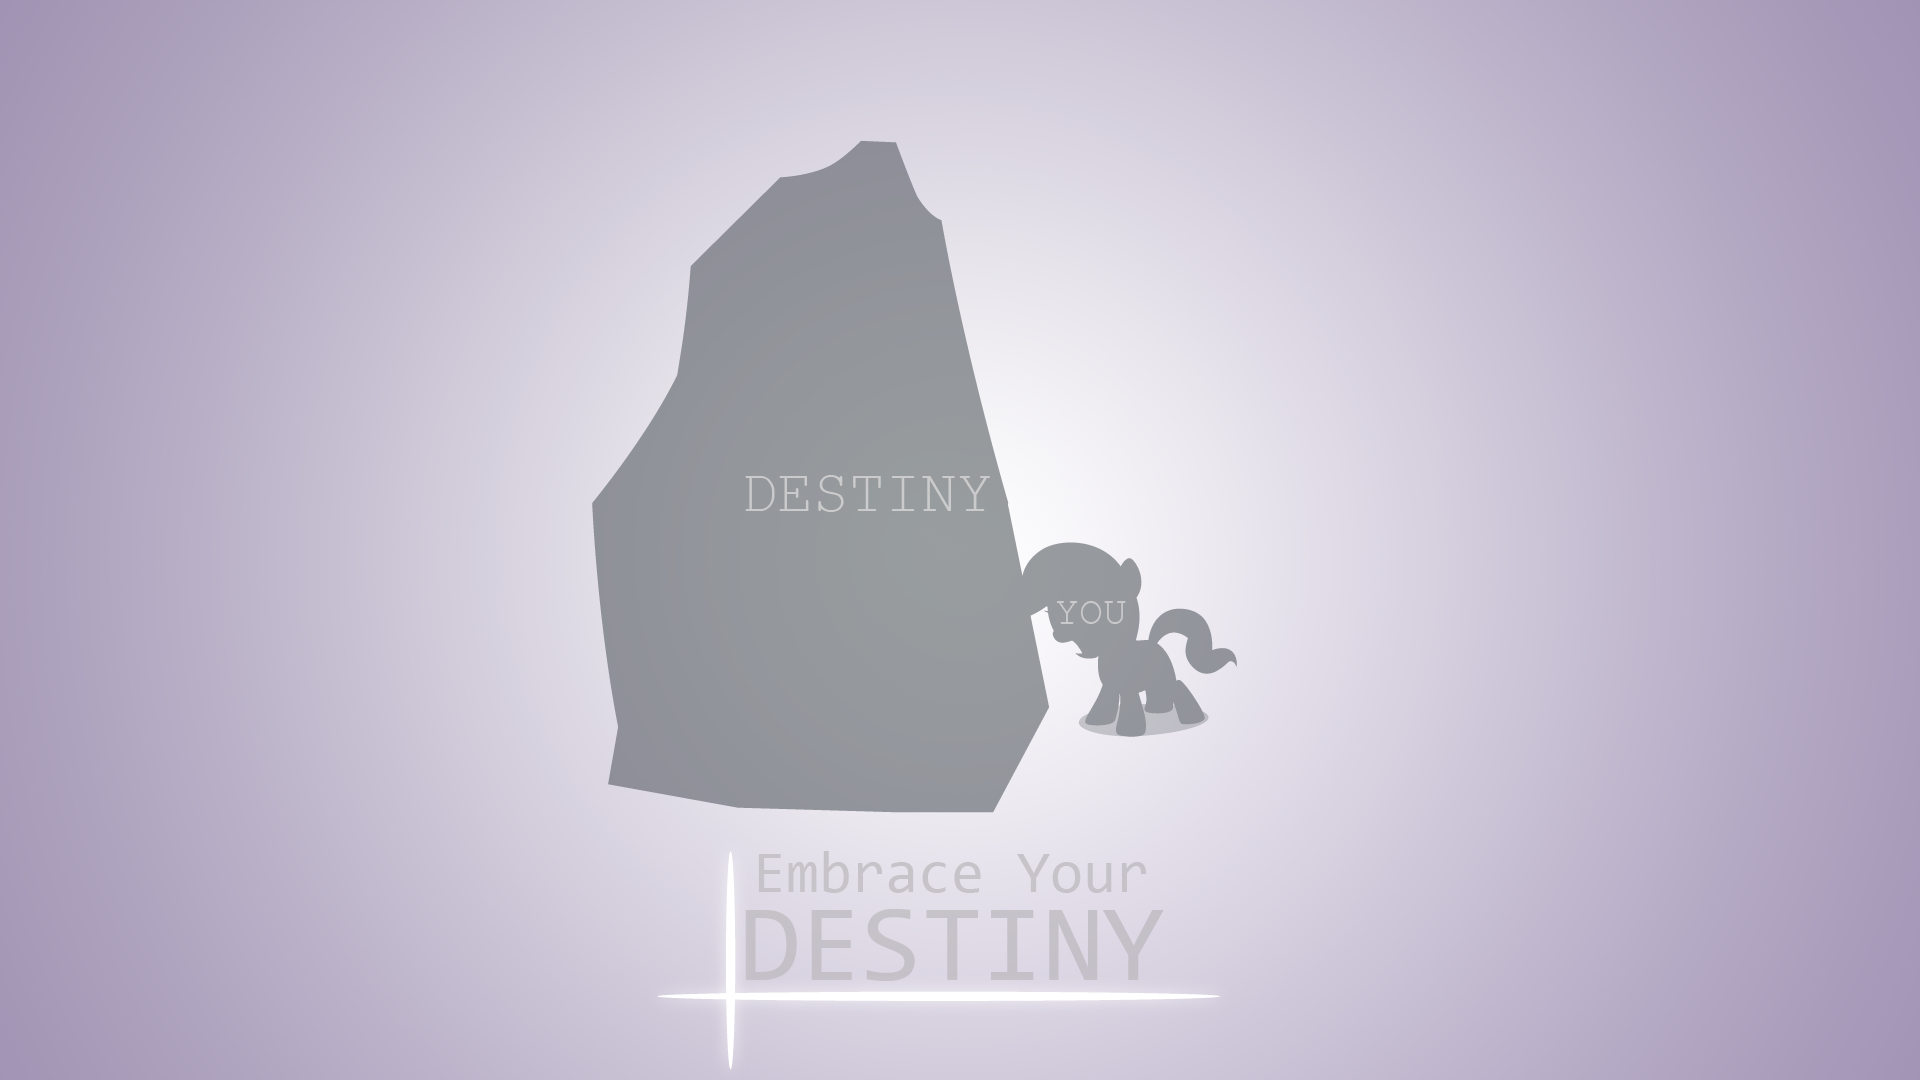 Embrace Your Destiny by ChingyPants and DanLeMan14